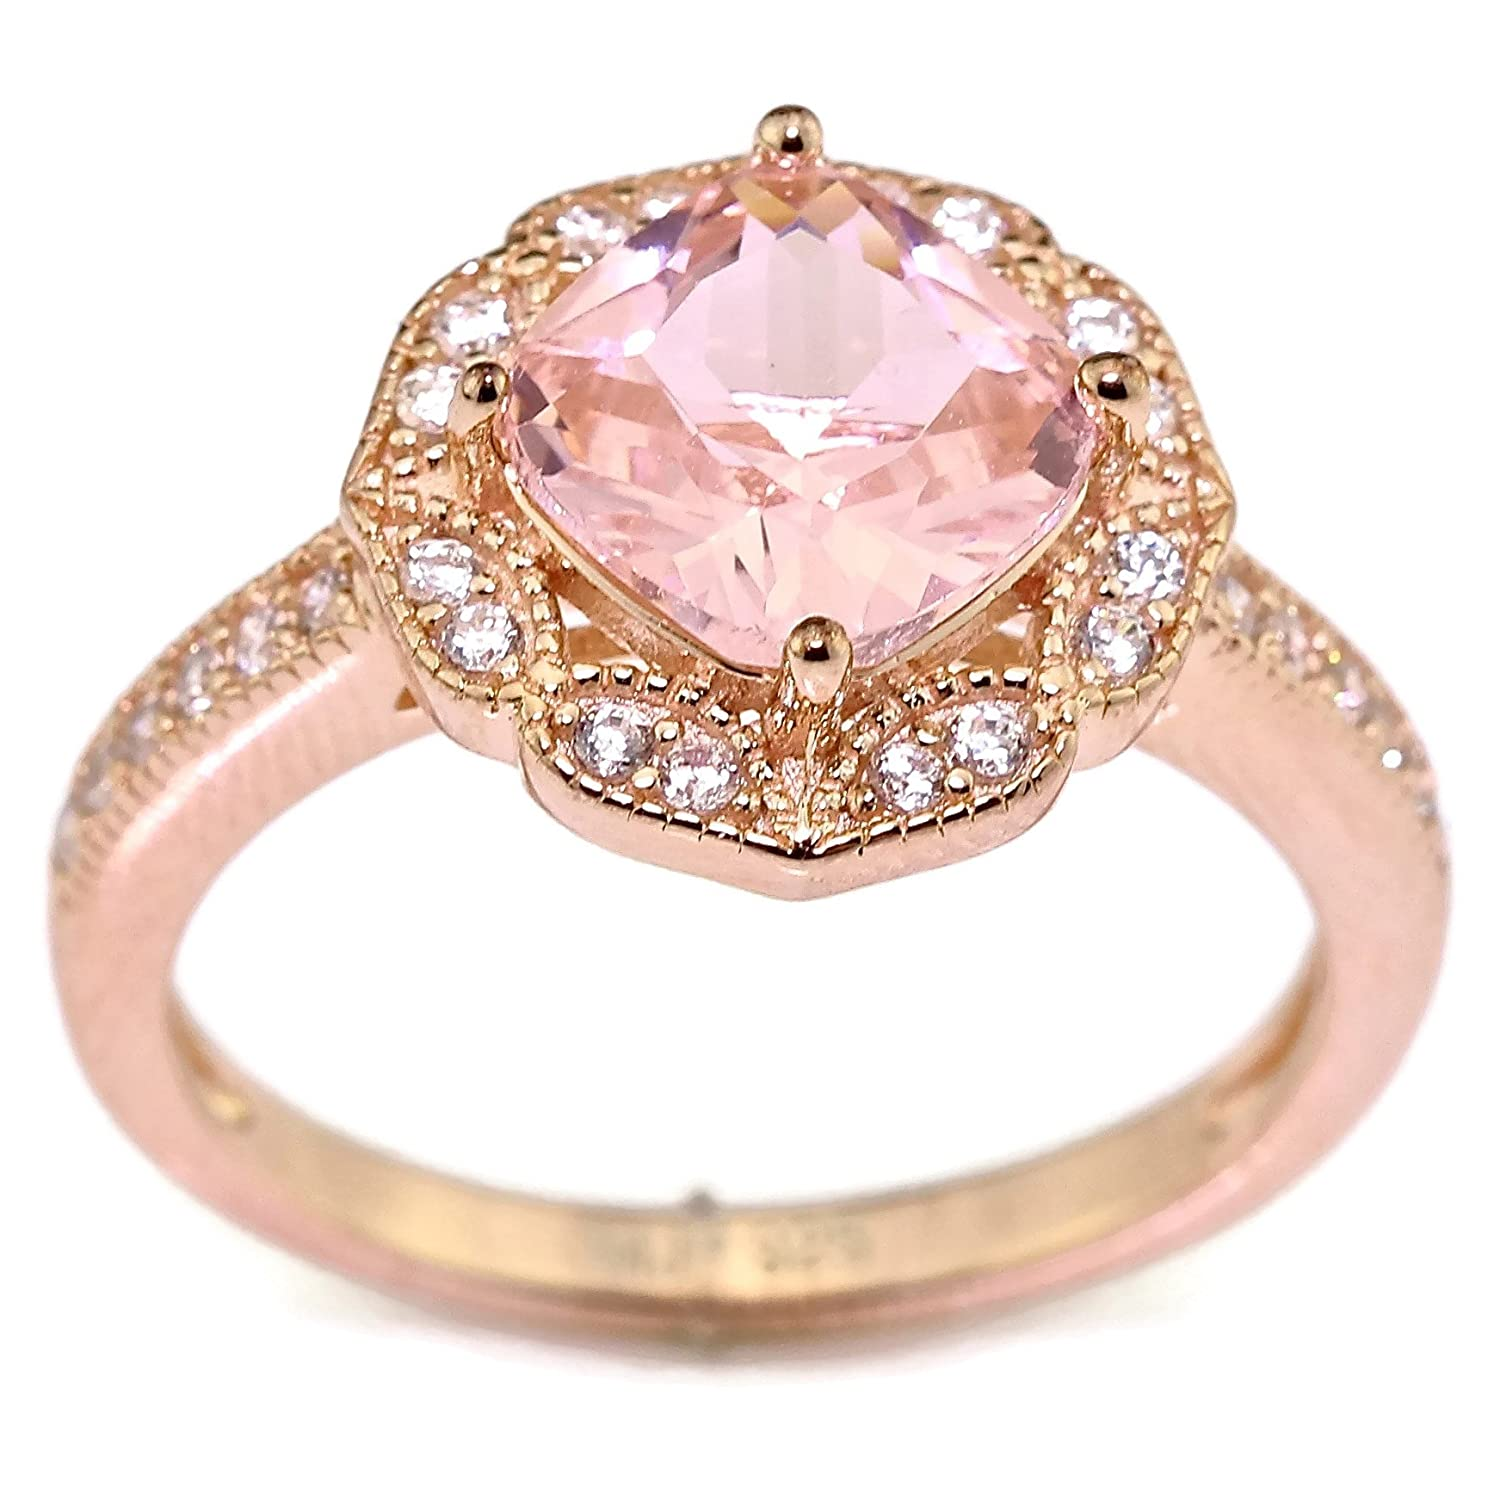 Created Rose Pink Morganite Floral Halo Solitaire Bridal Engagement